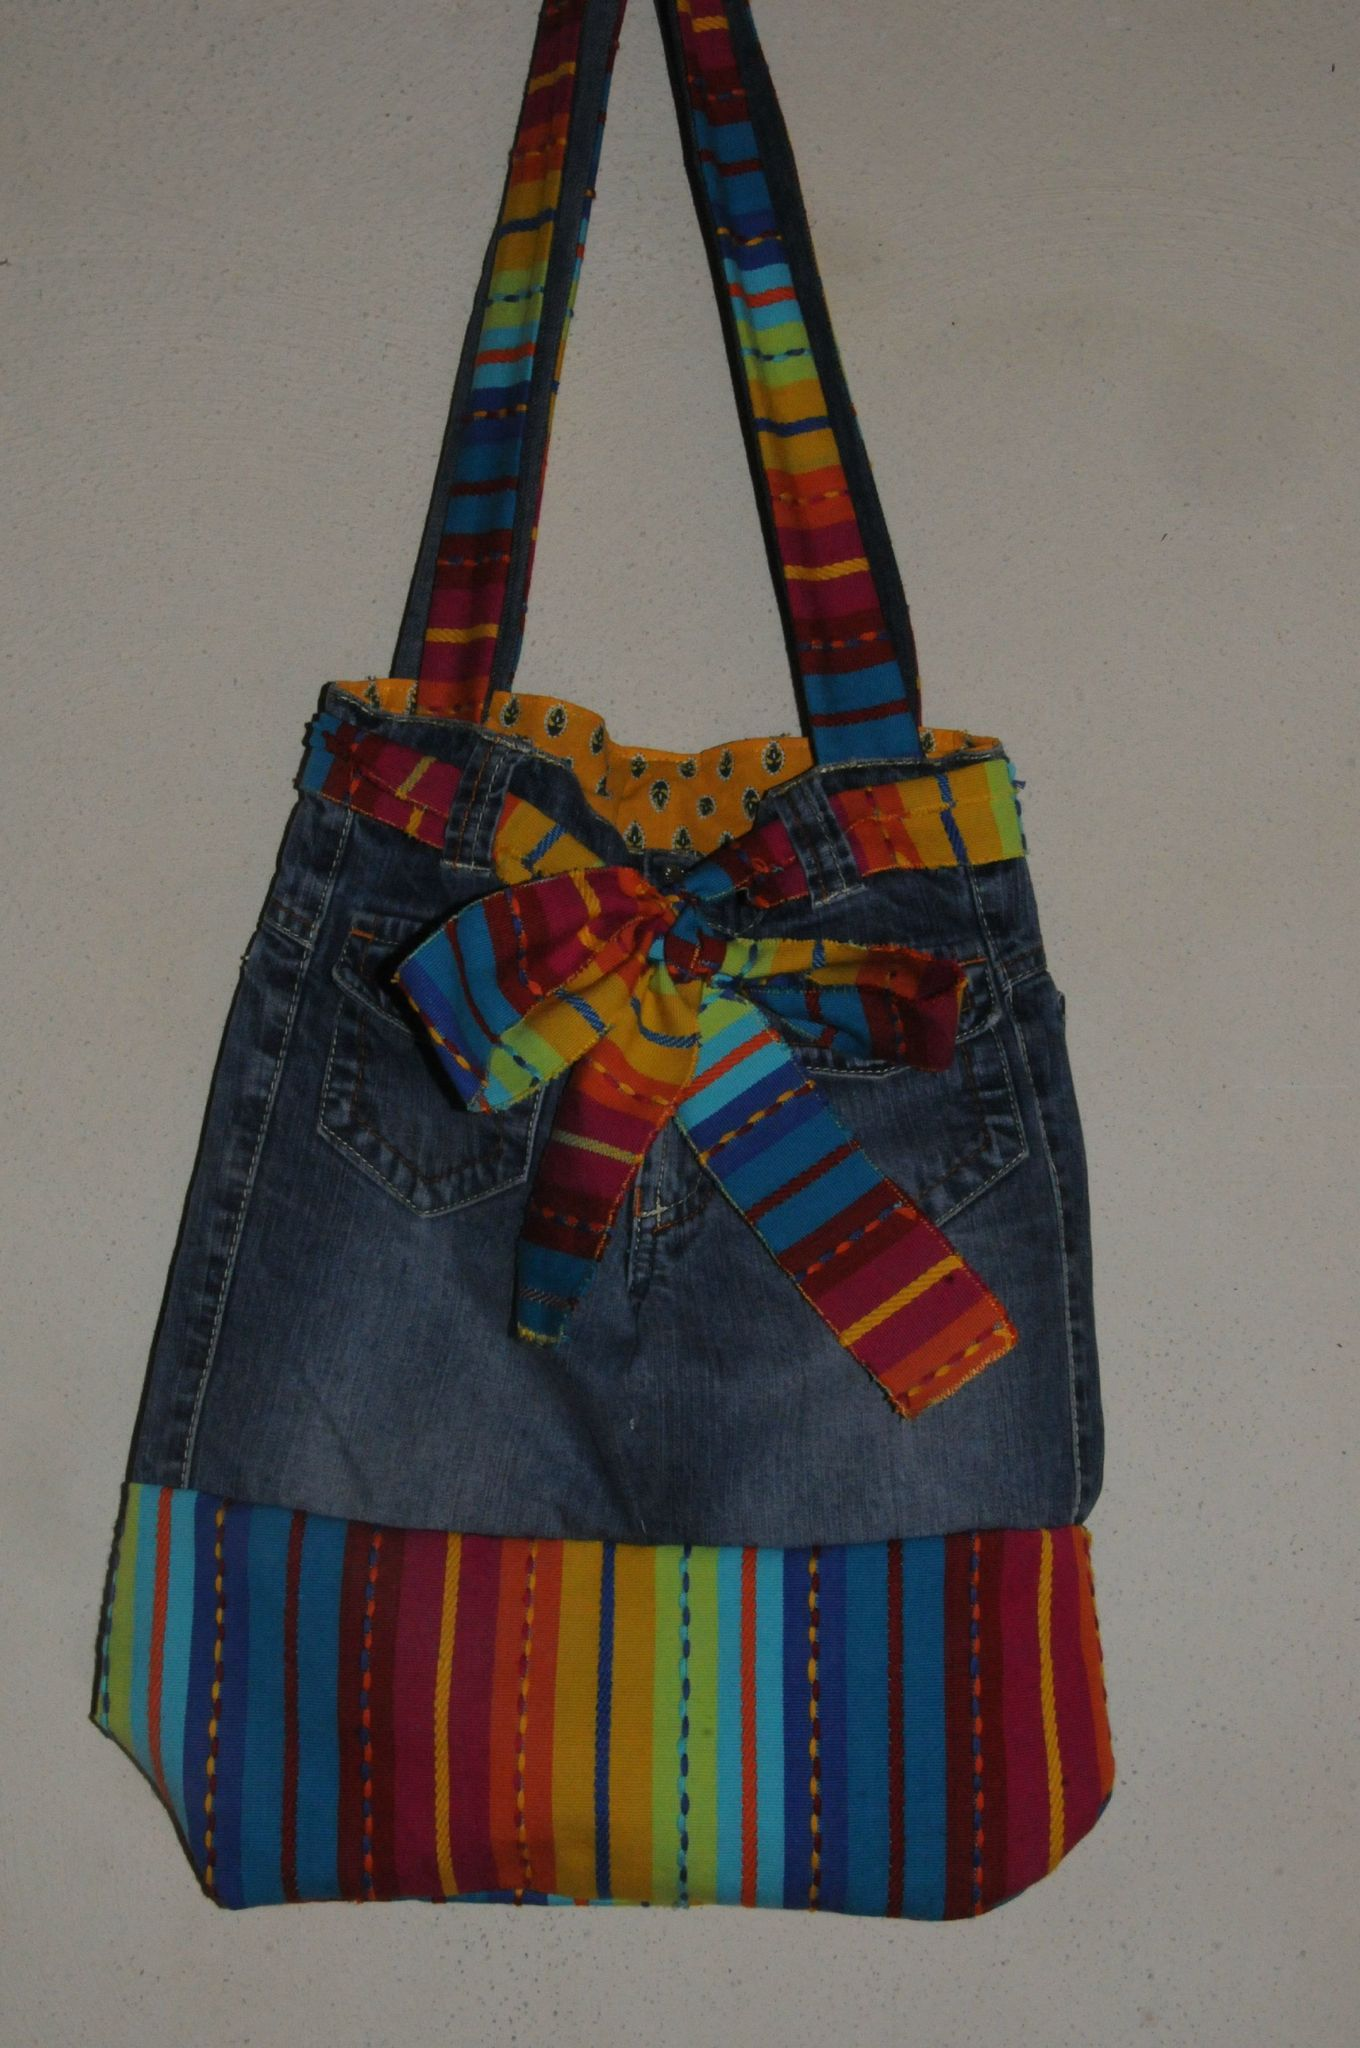 sac avec un vieux jean rainbow fabric and recycled denim tote 2 denim recycled jeans totes. Black Bedroom Furniture Sets. Home Design Ideas